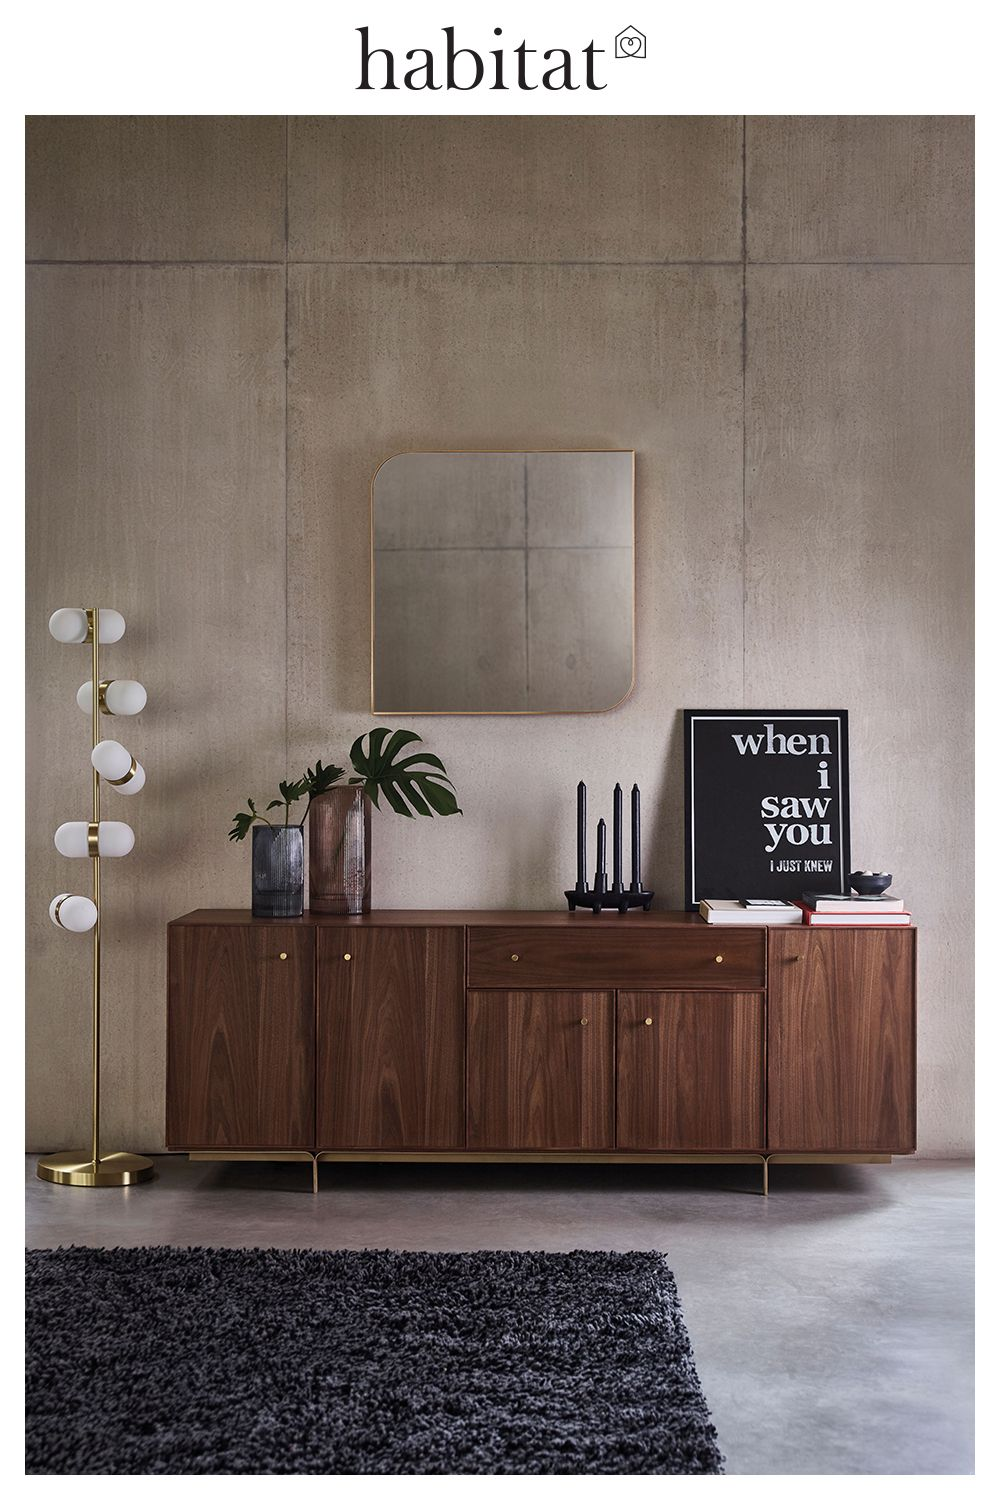 Pin by HabitatUK on Trends in 2020 Beautiful kitchens